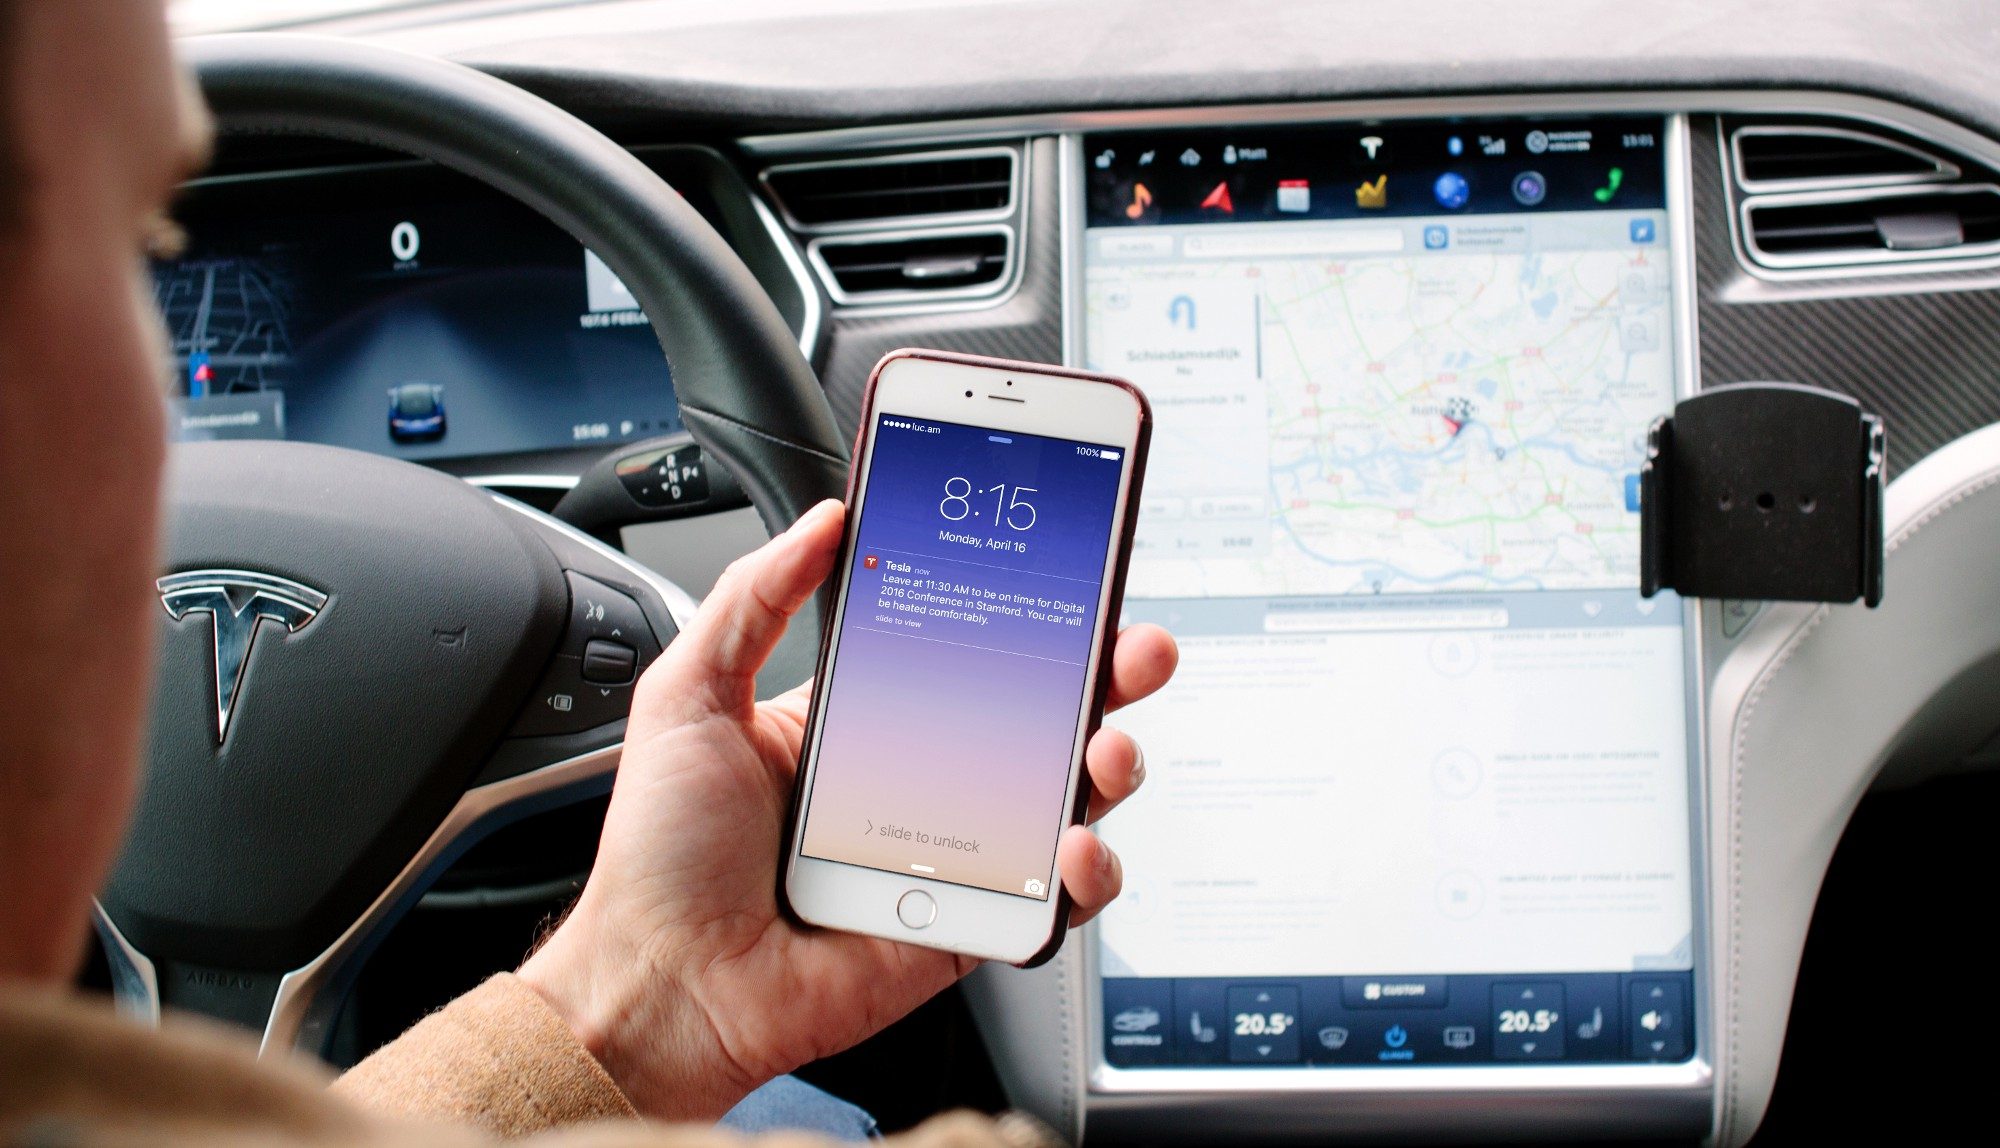 What we learned designing a car user experience